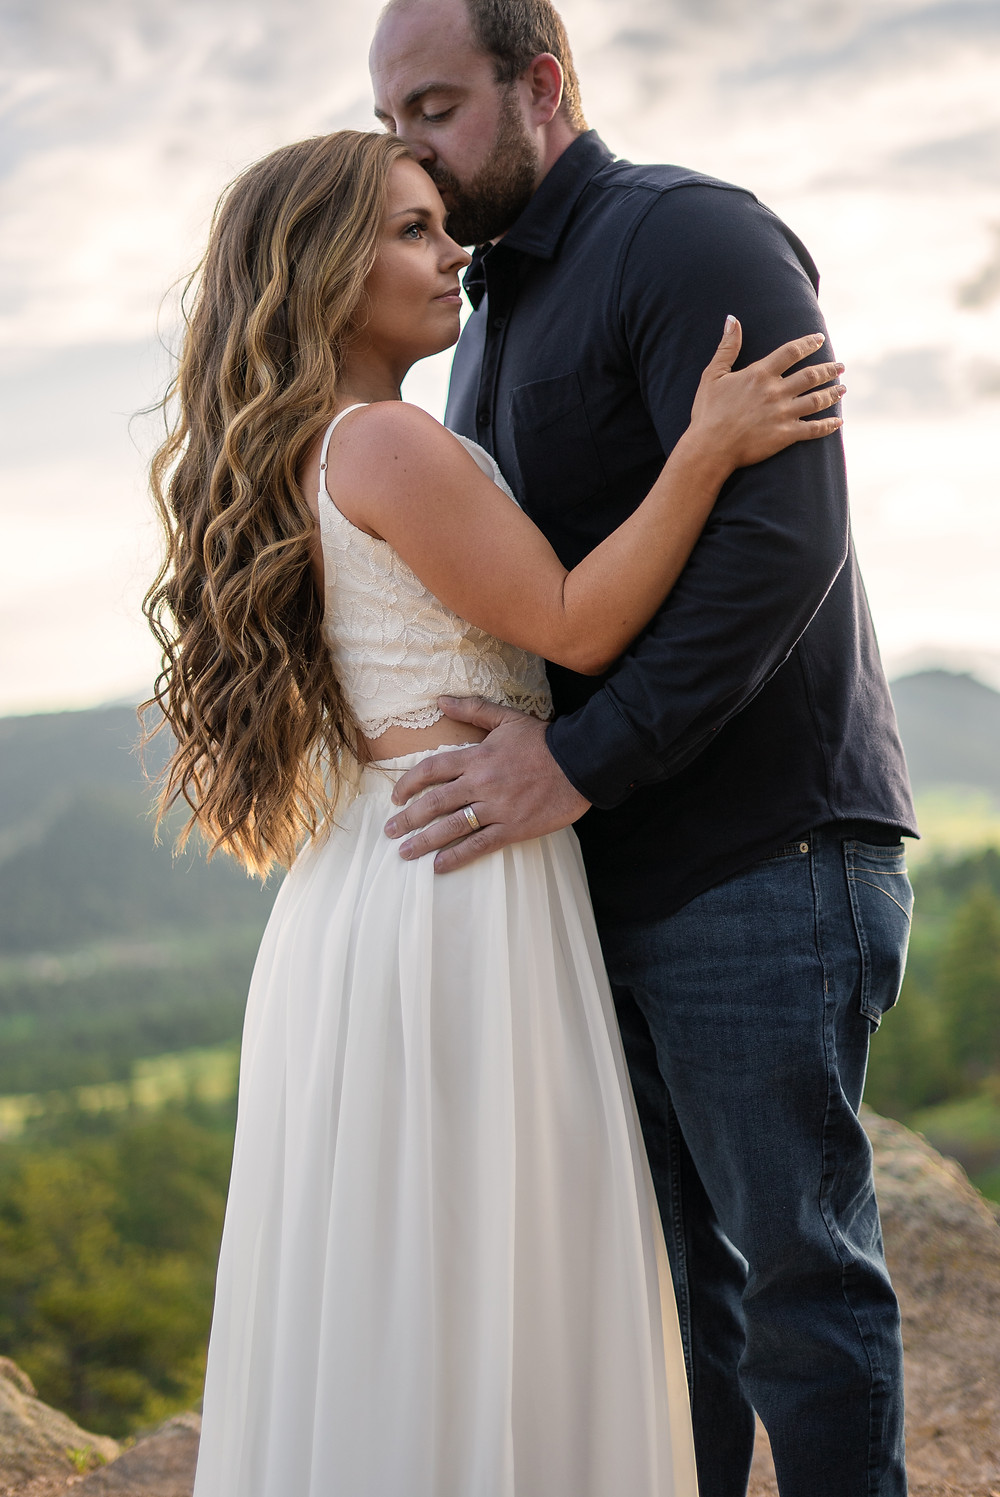 Engagement photographer at Morrison, Colorado